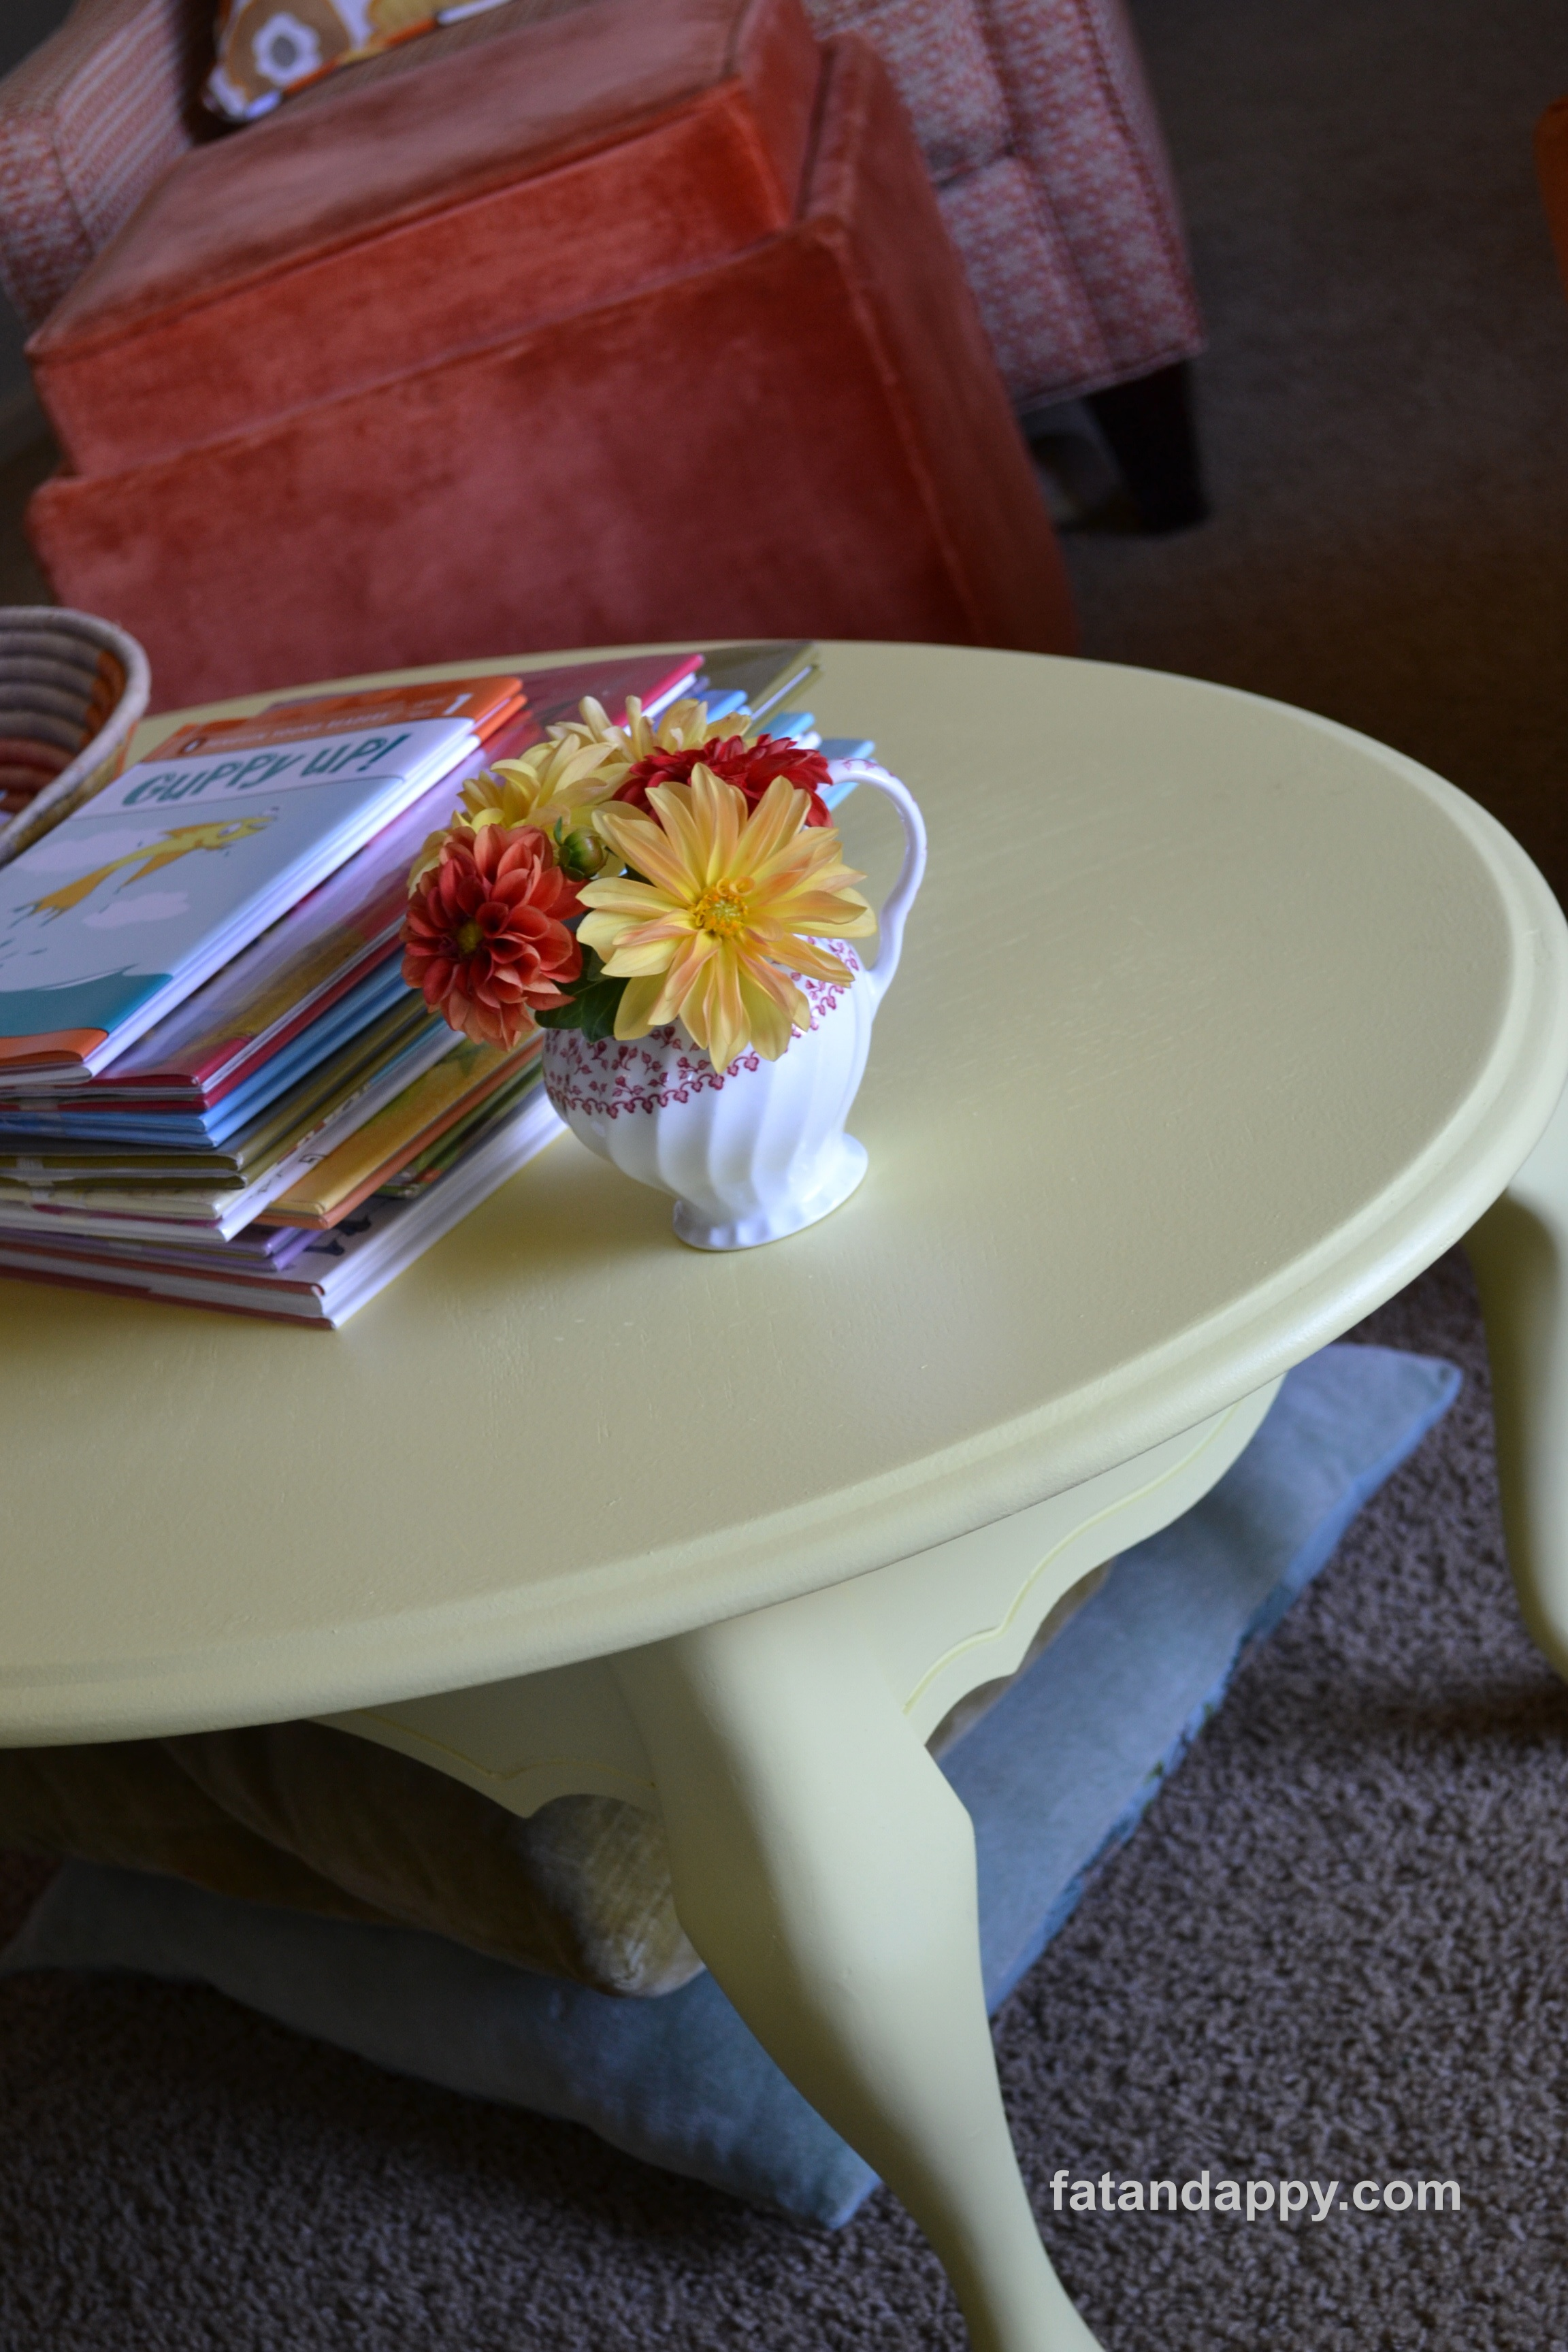 A vase of zinnias on a coffee table painted with Valspar Oatland Daisy